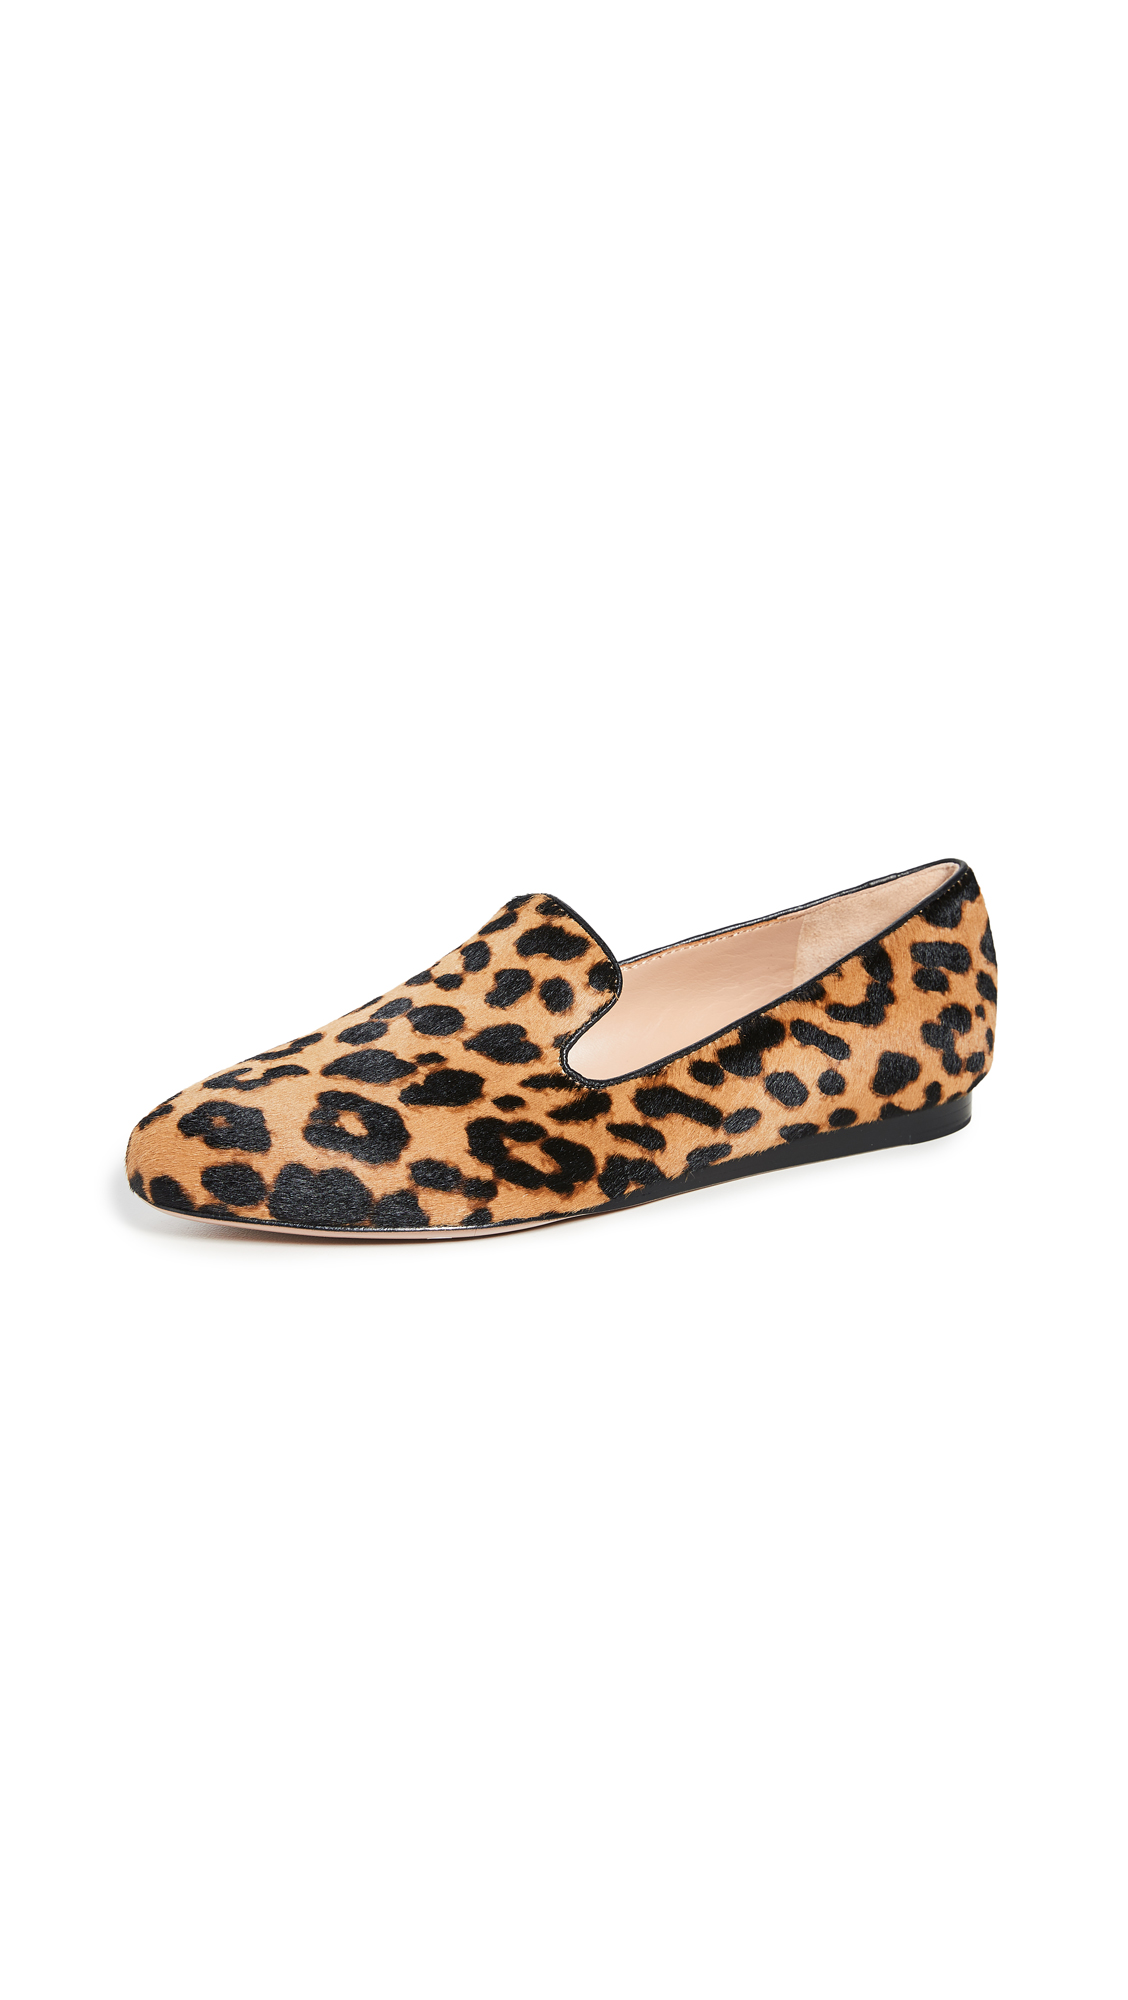 Buy Veronica Beard Griffin Loafers online, shop Veronica Beard